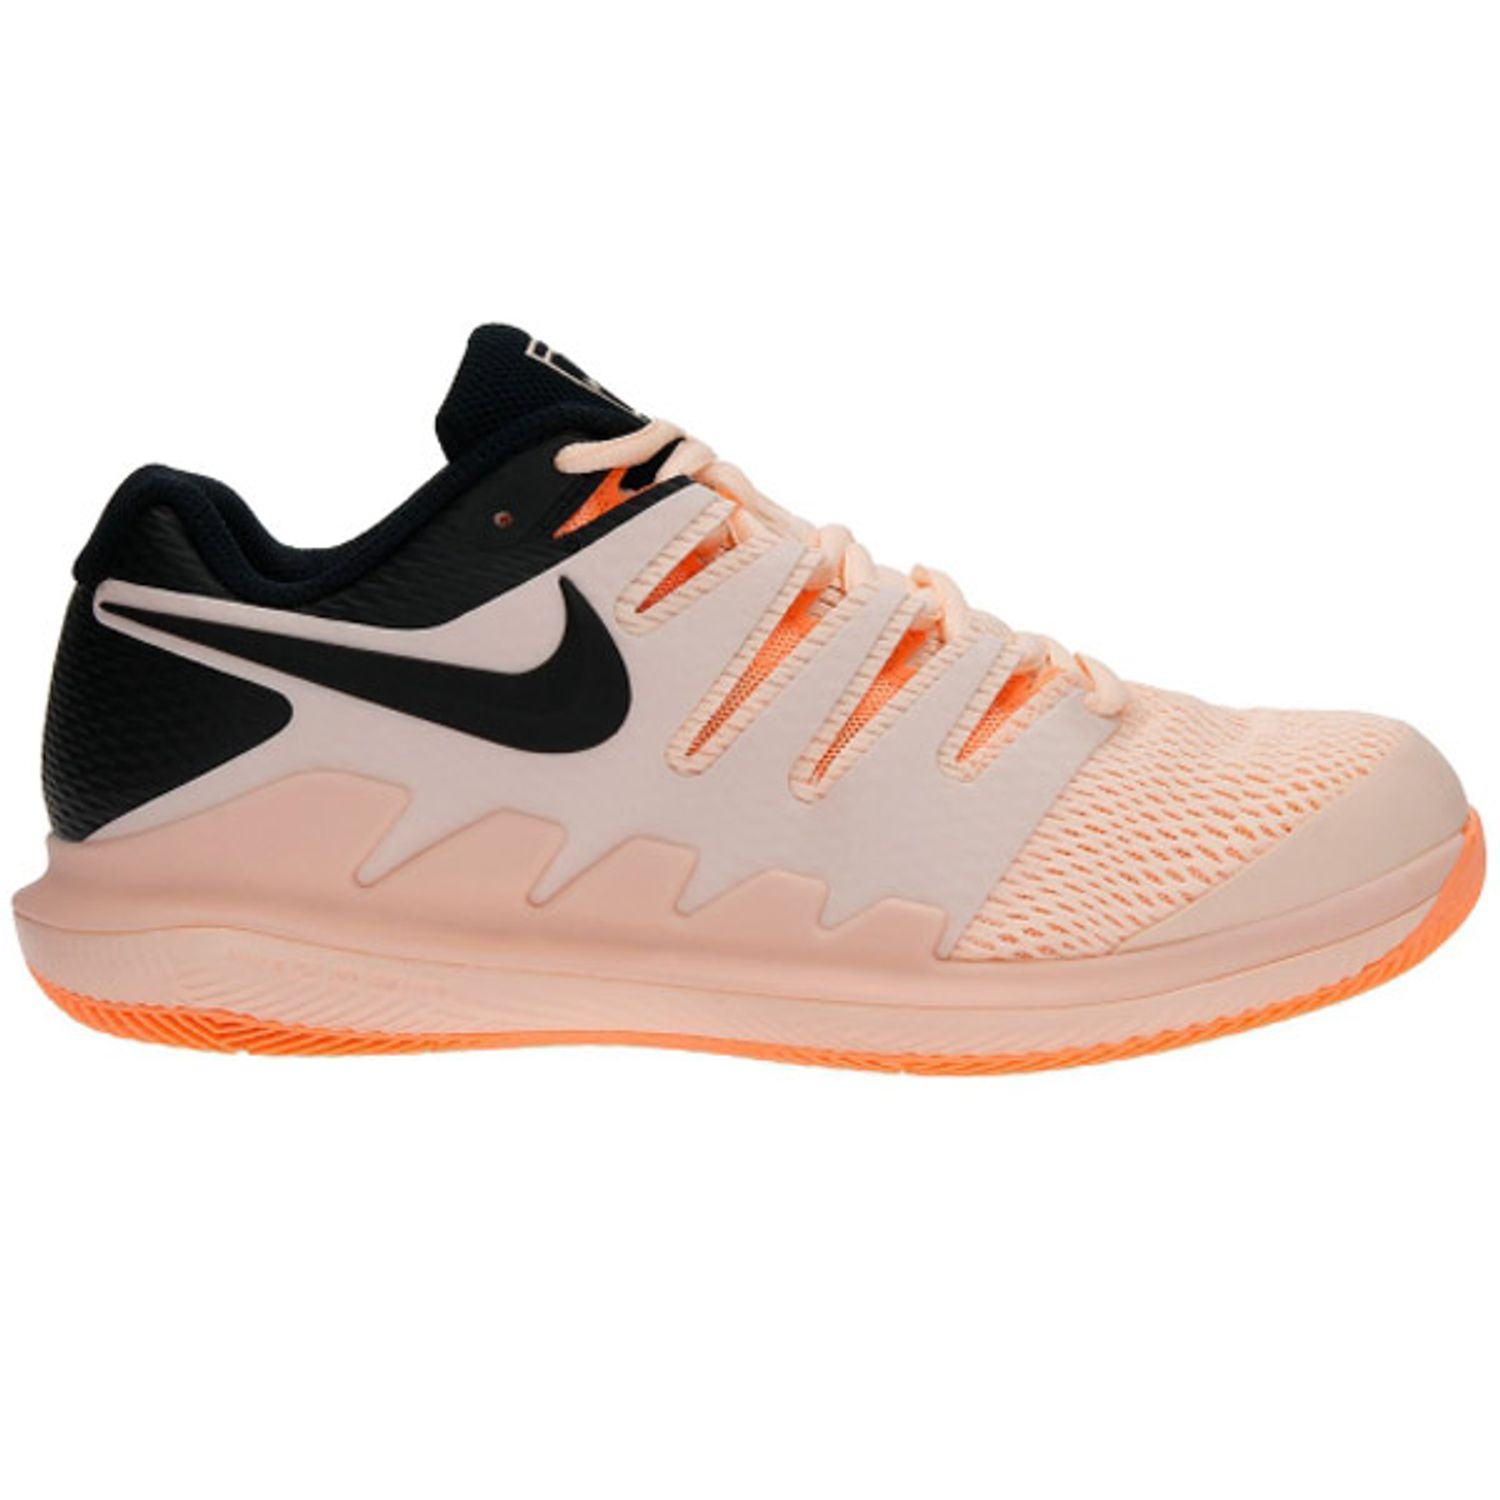 buy popular 5a53e d2de1 zapatillas nike de tenis air zoom vapor x hc de mujer - sporting